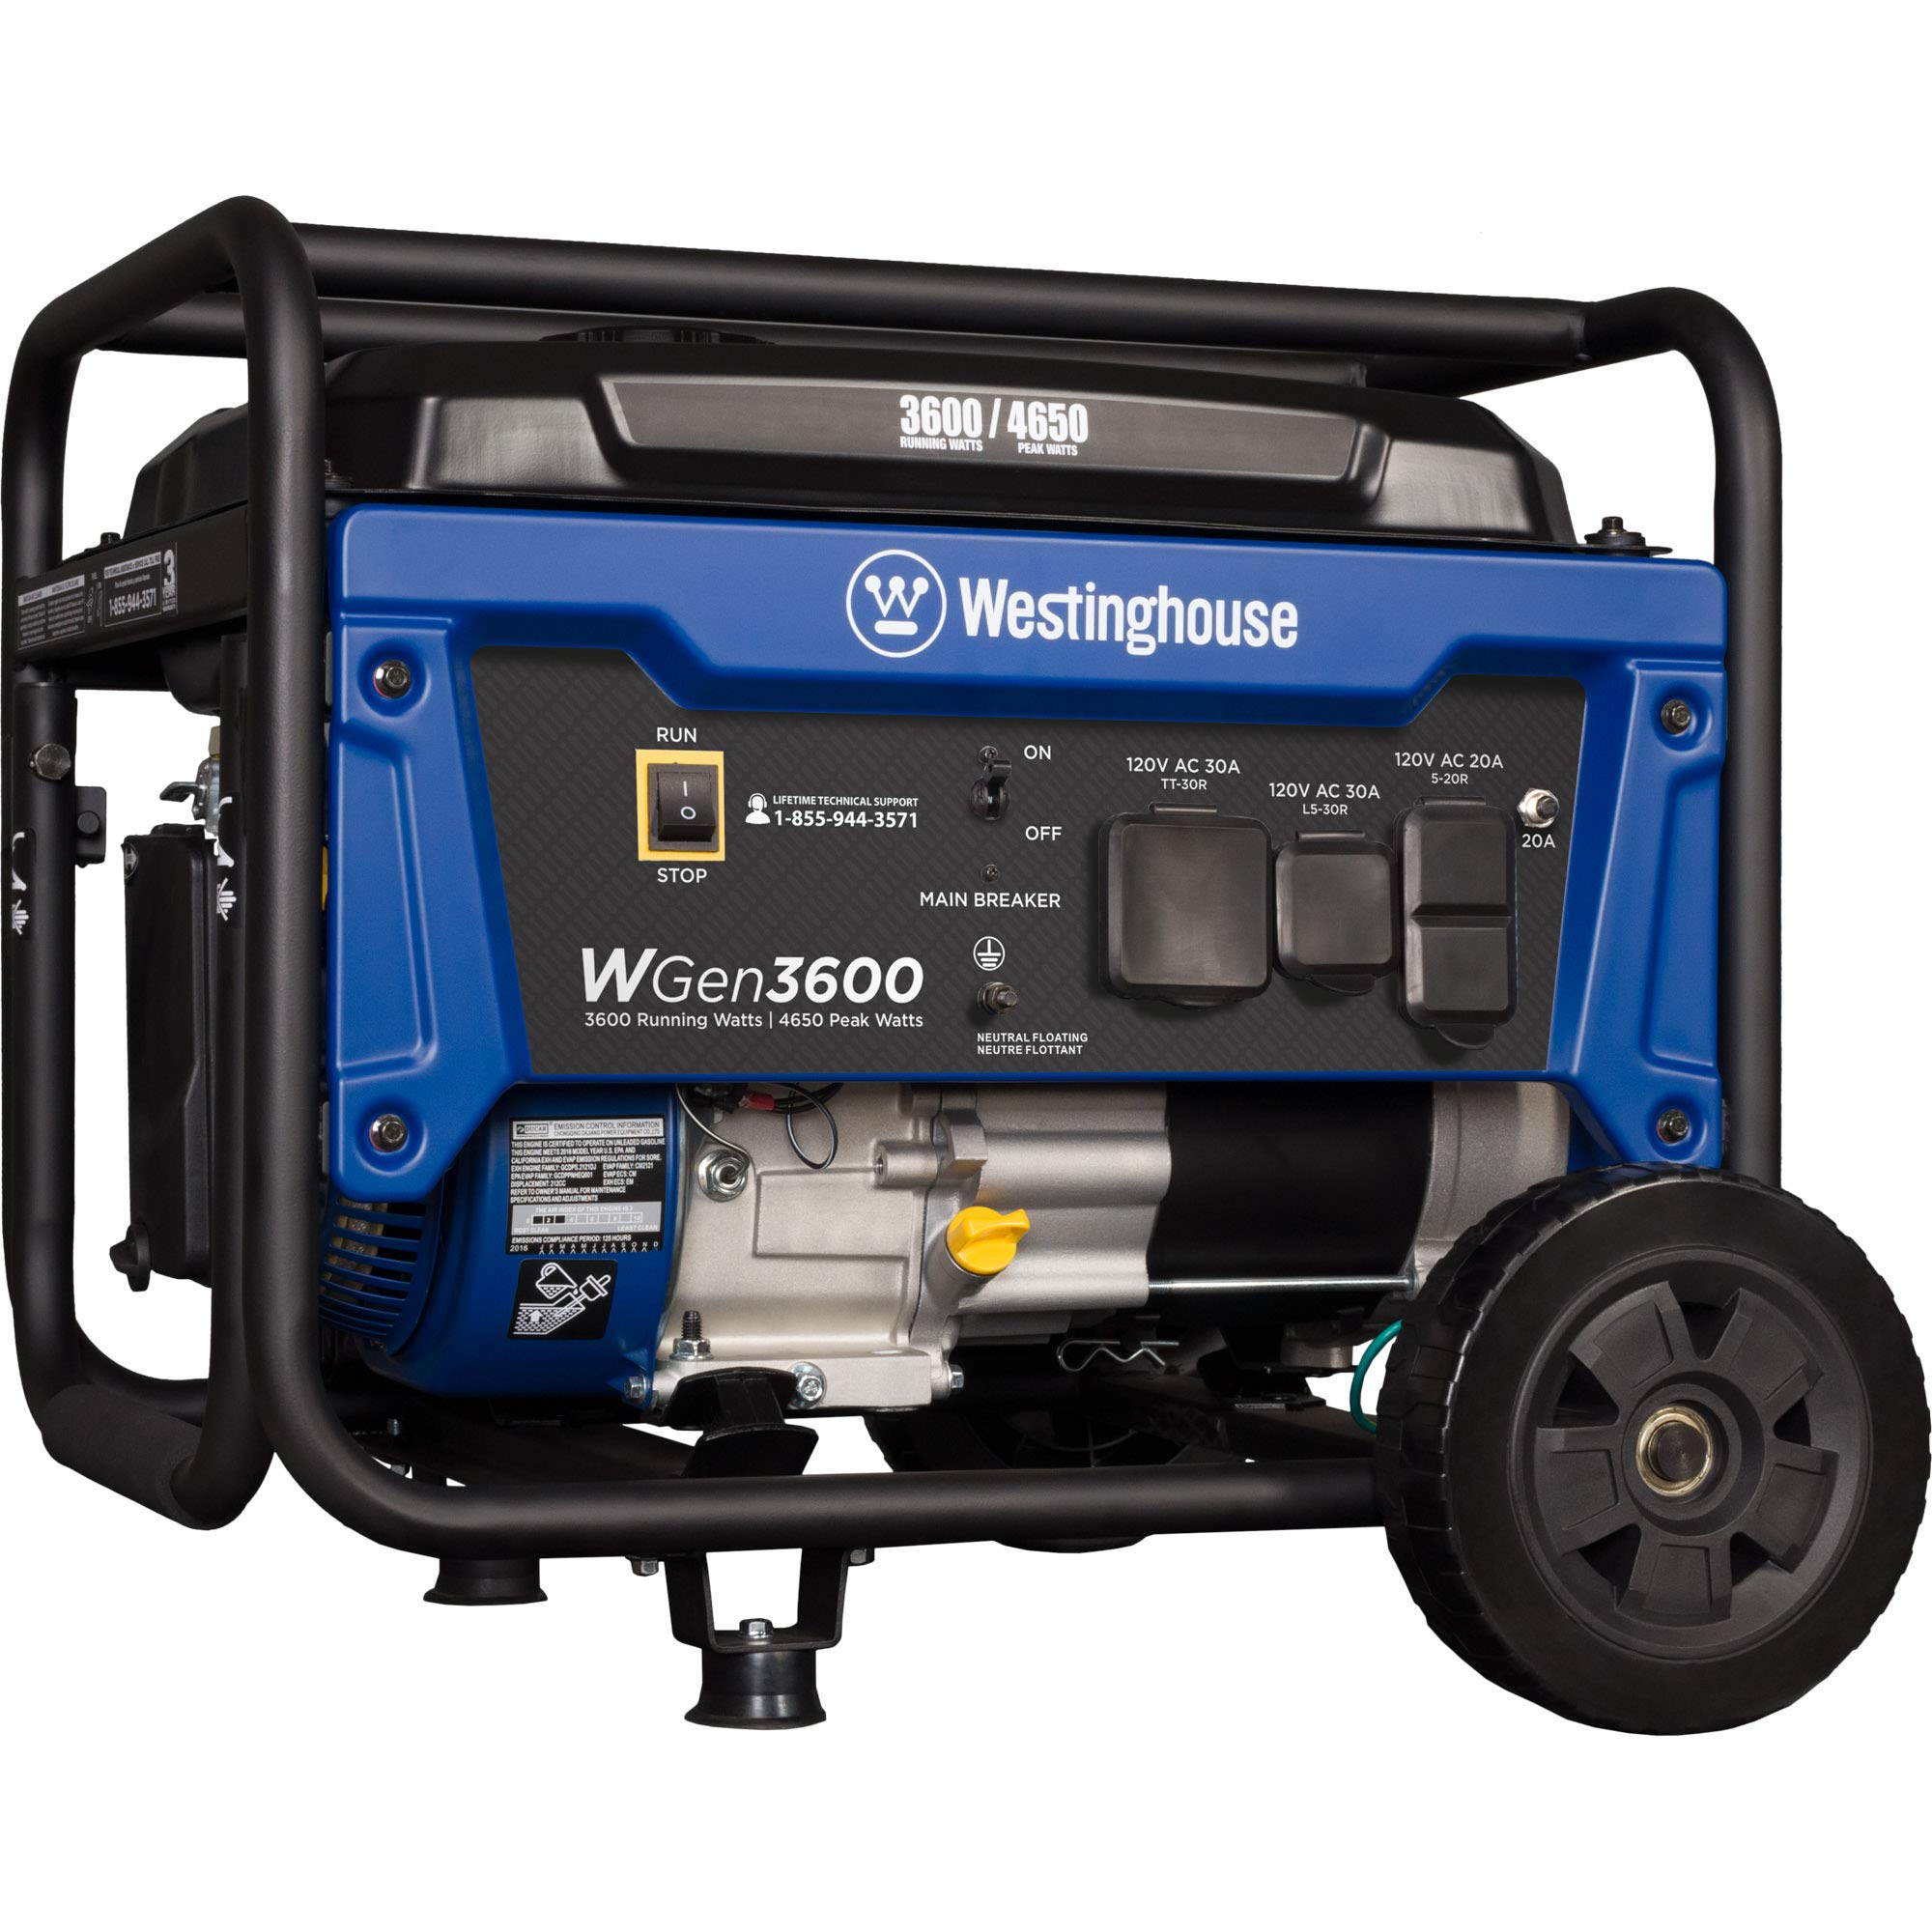 Westinghouse WGen3600 Portable Generator - 3600 Rated Watts & 4650 Peak Watts - RV Ready - Gas Powered - CARB Compliant by Westinghouse